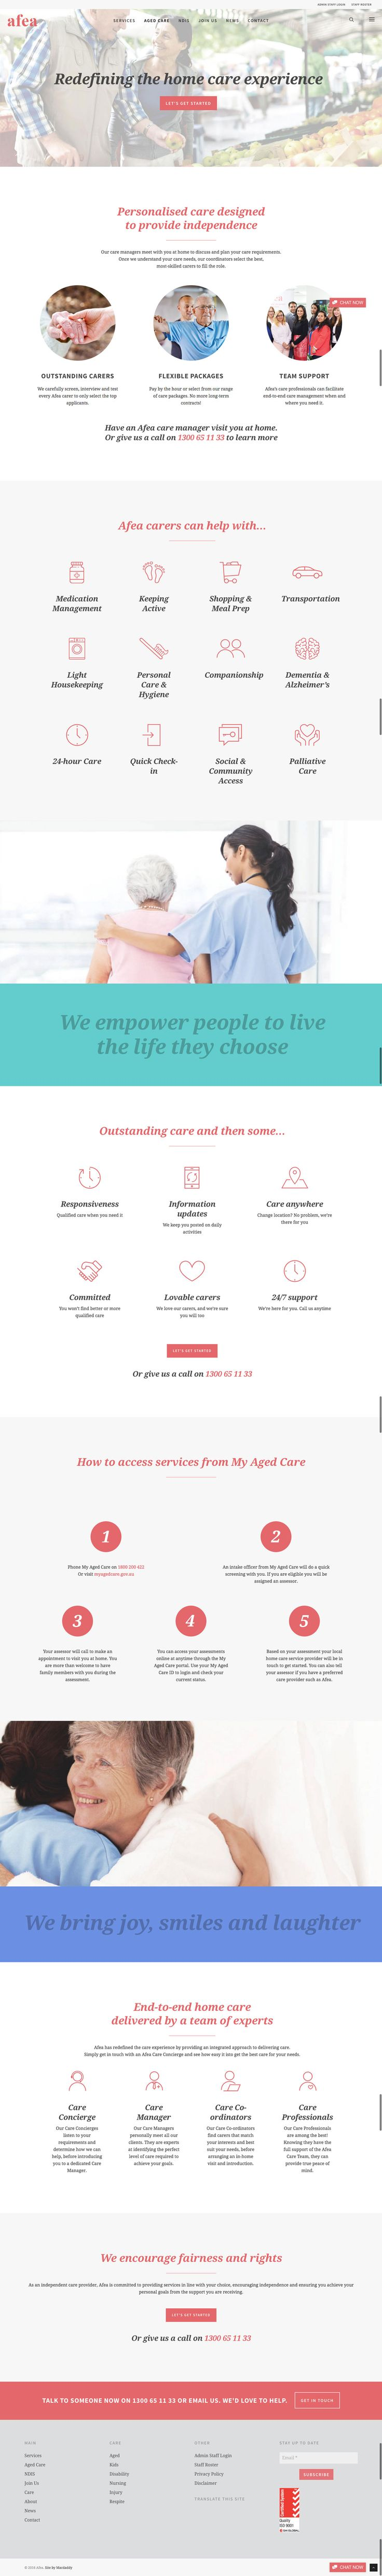 New responsive responsive website by KORE (http://kore.digital/). Aged care page. #responsivedesign #webdesign #wordpress